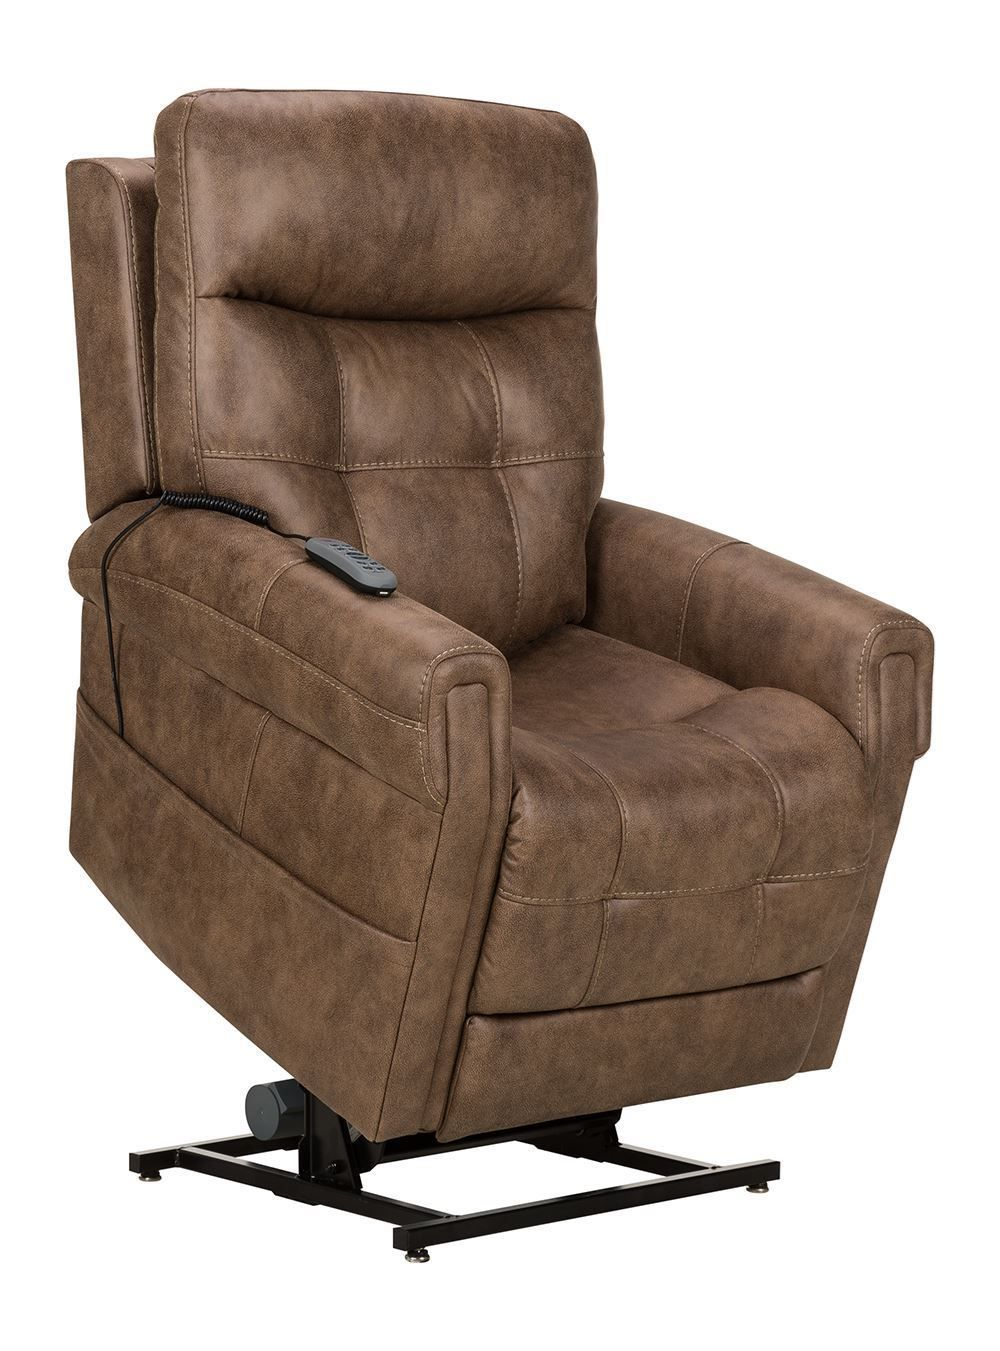 Picture of Canyon Silt Power Lift Recliner